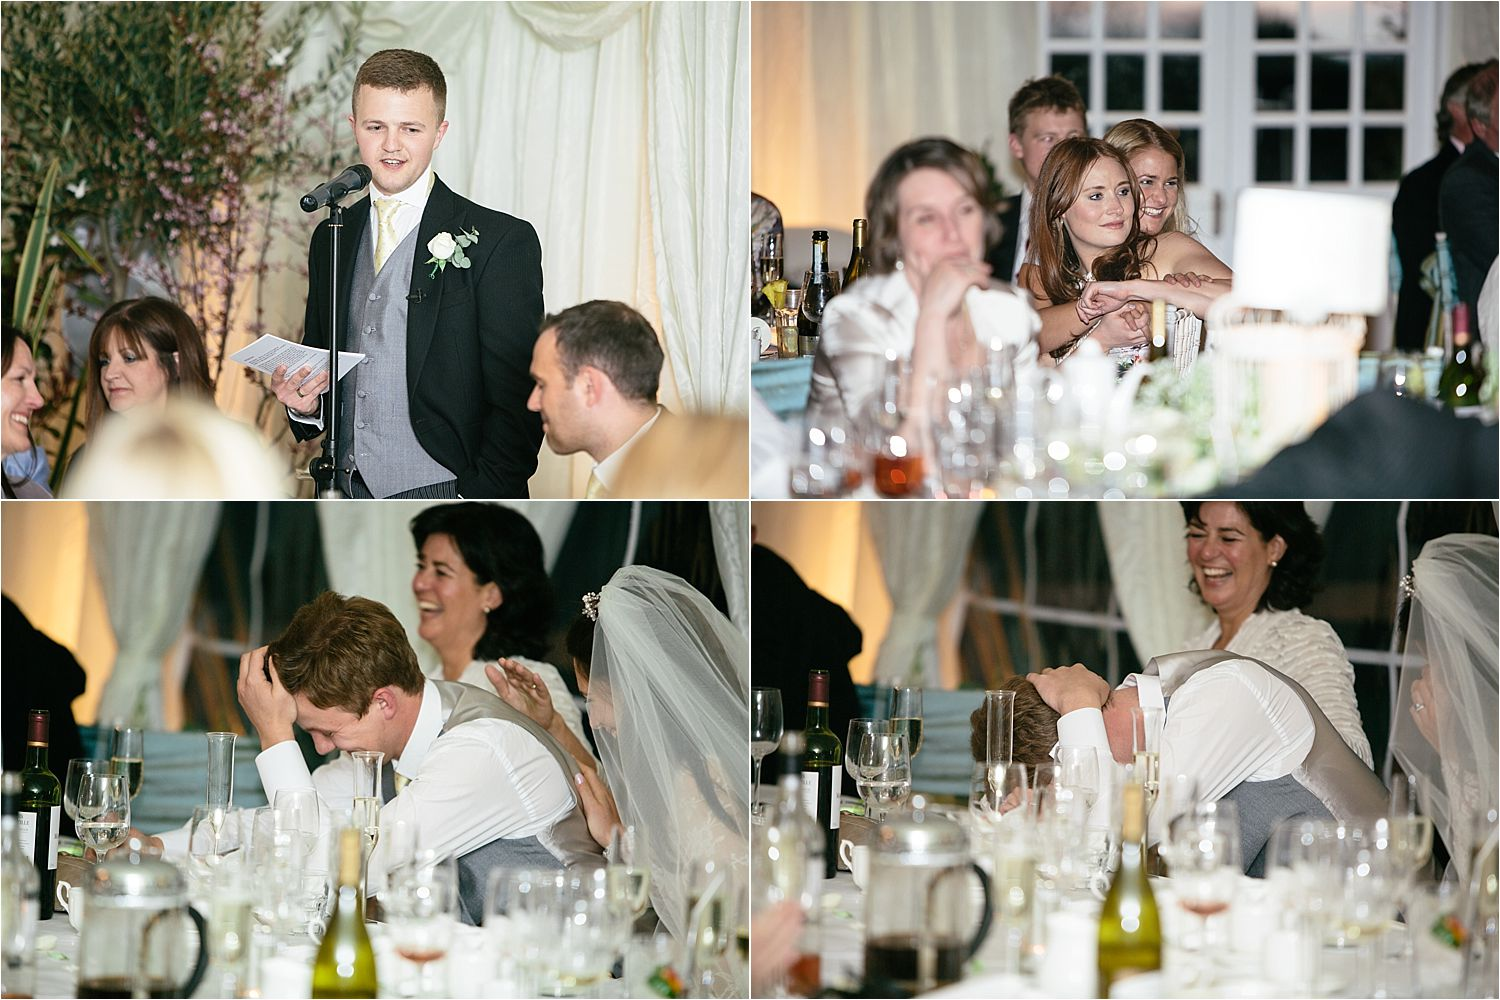 Guests reactions to best man's speech at Cheshire wedding